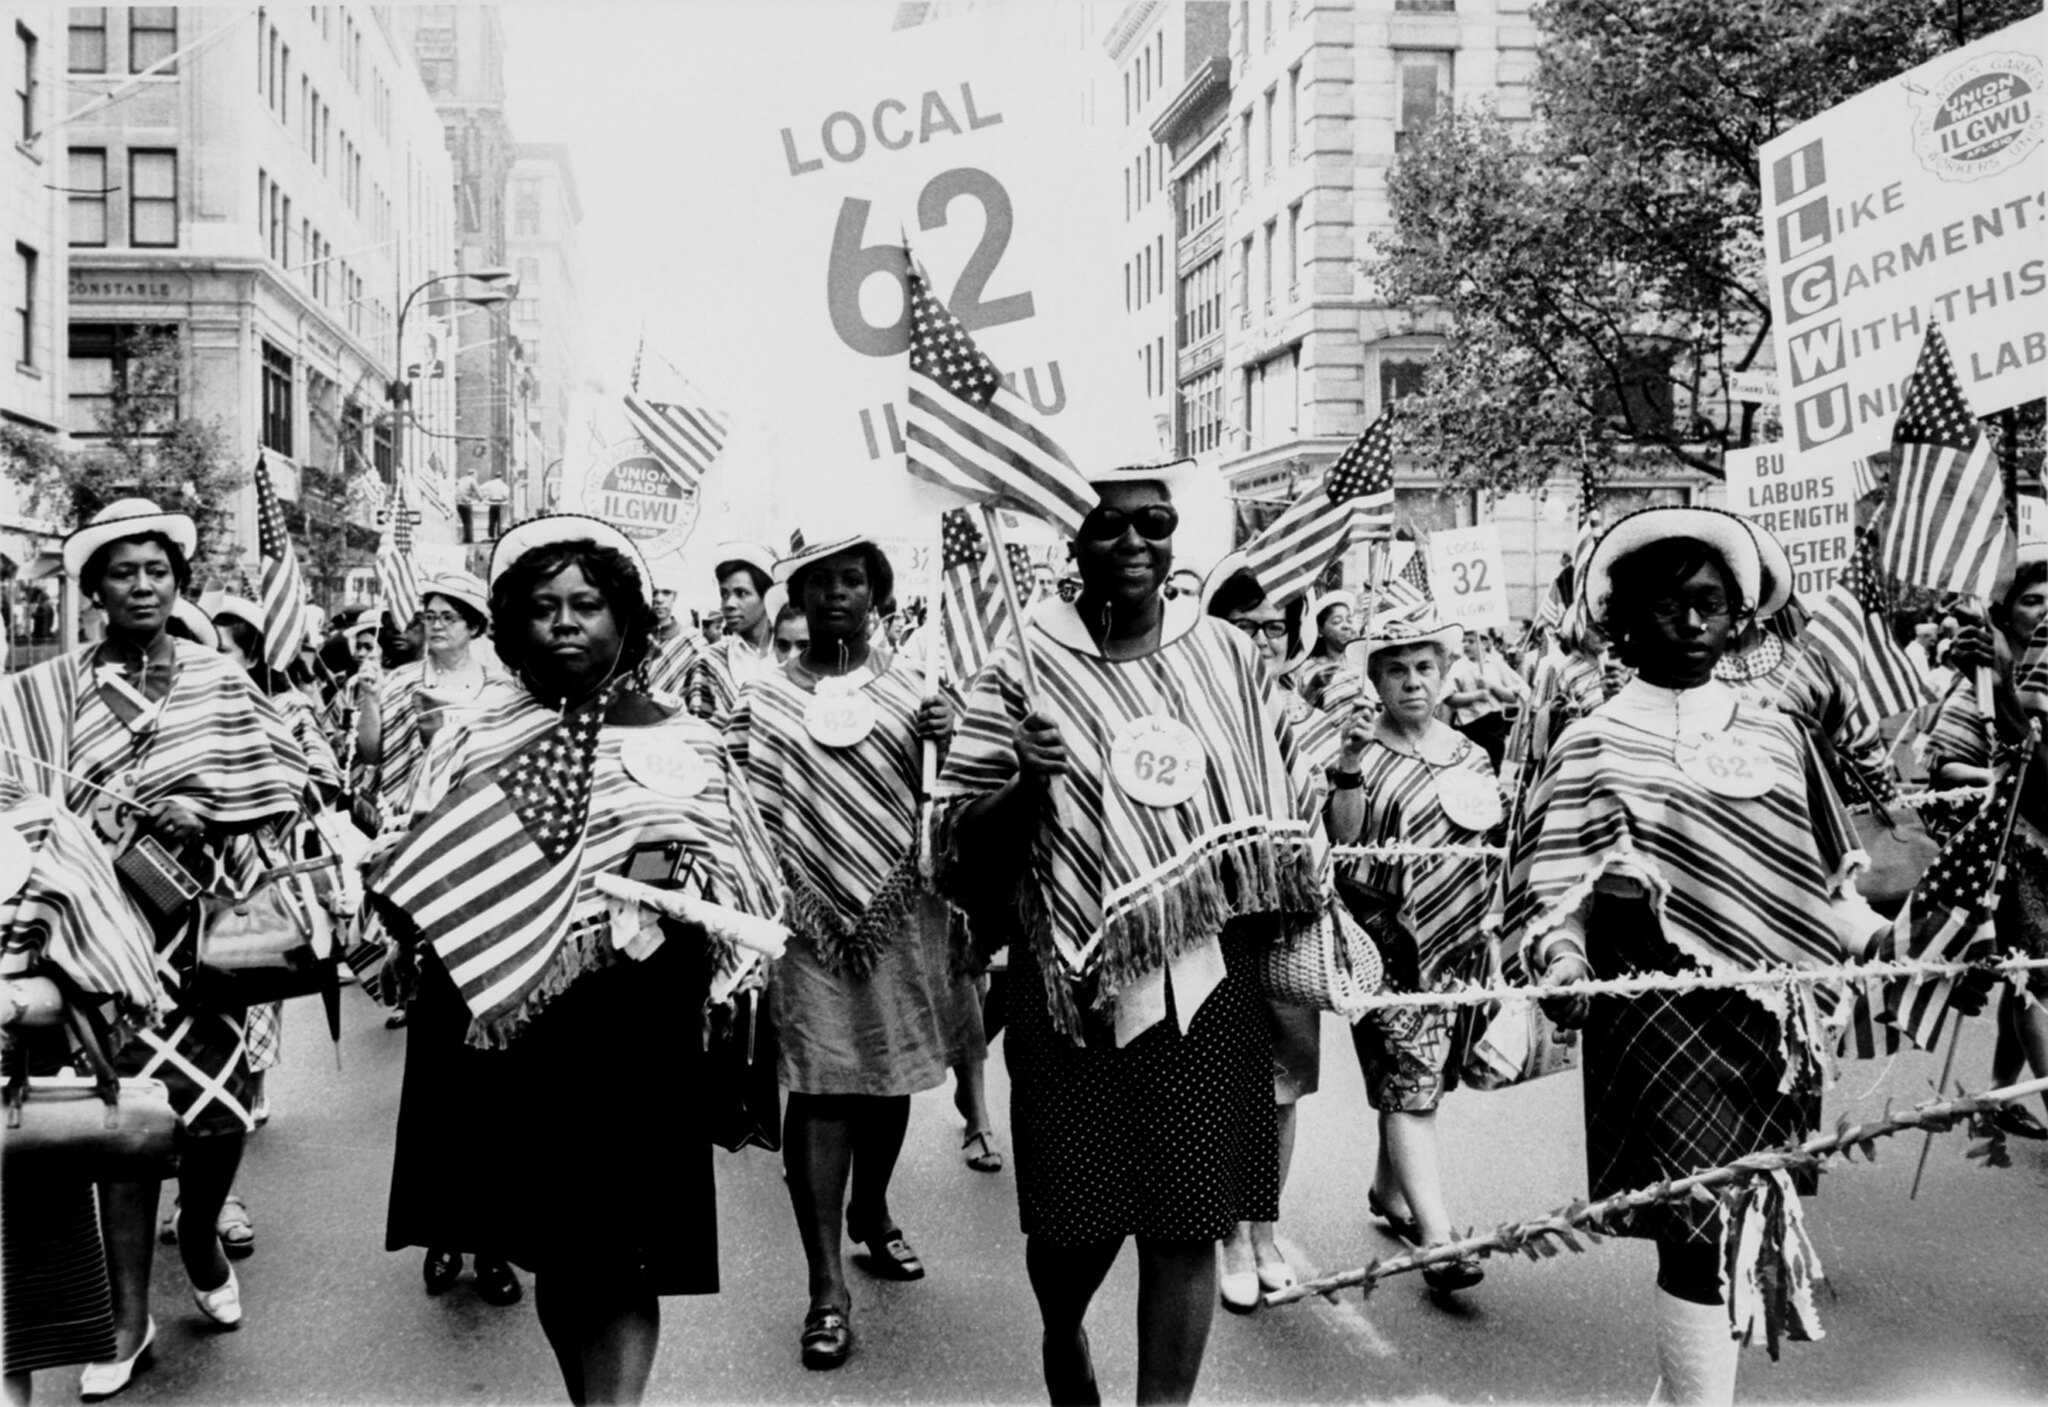 ILGWU Local 62 marches in a Labor Day parade.